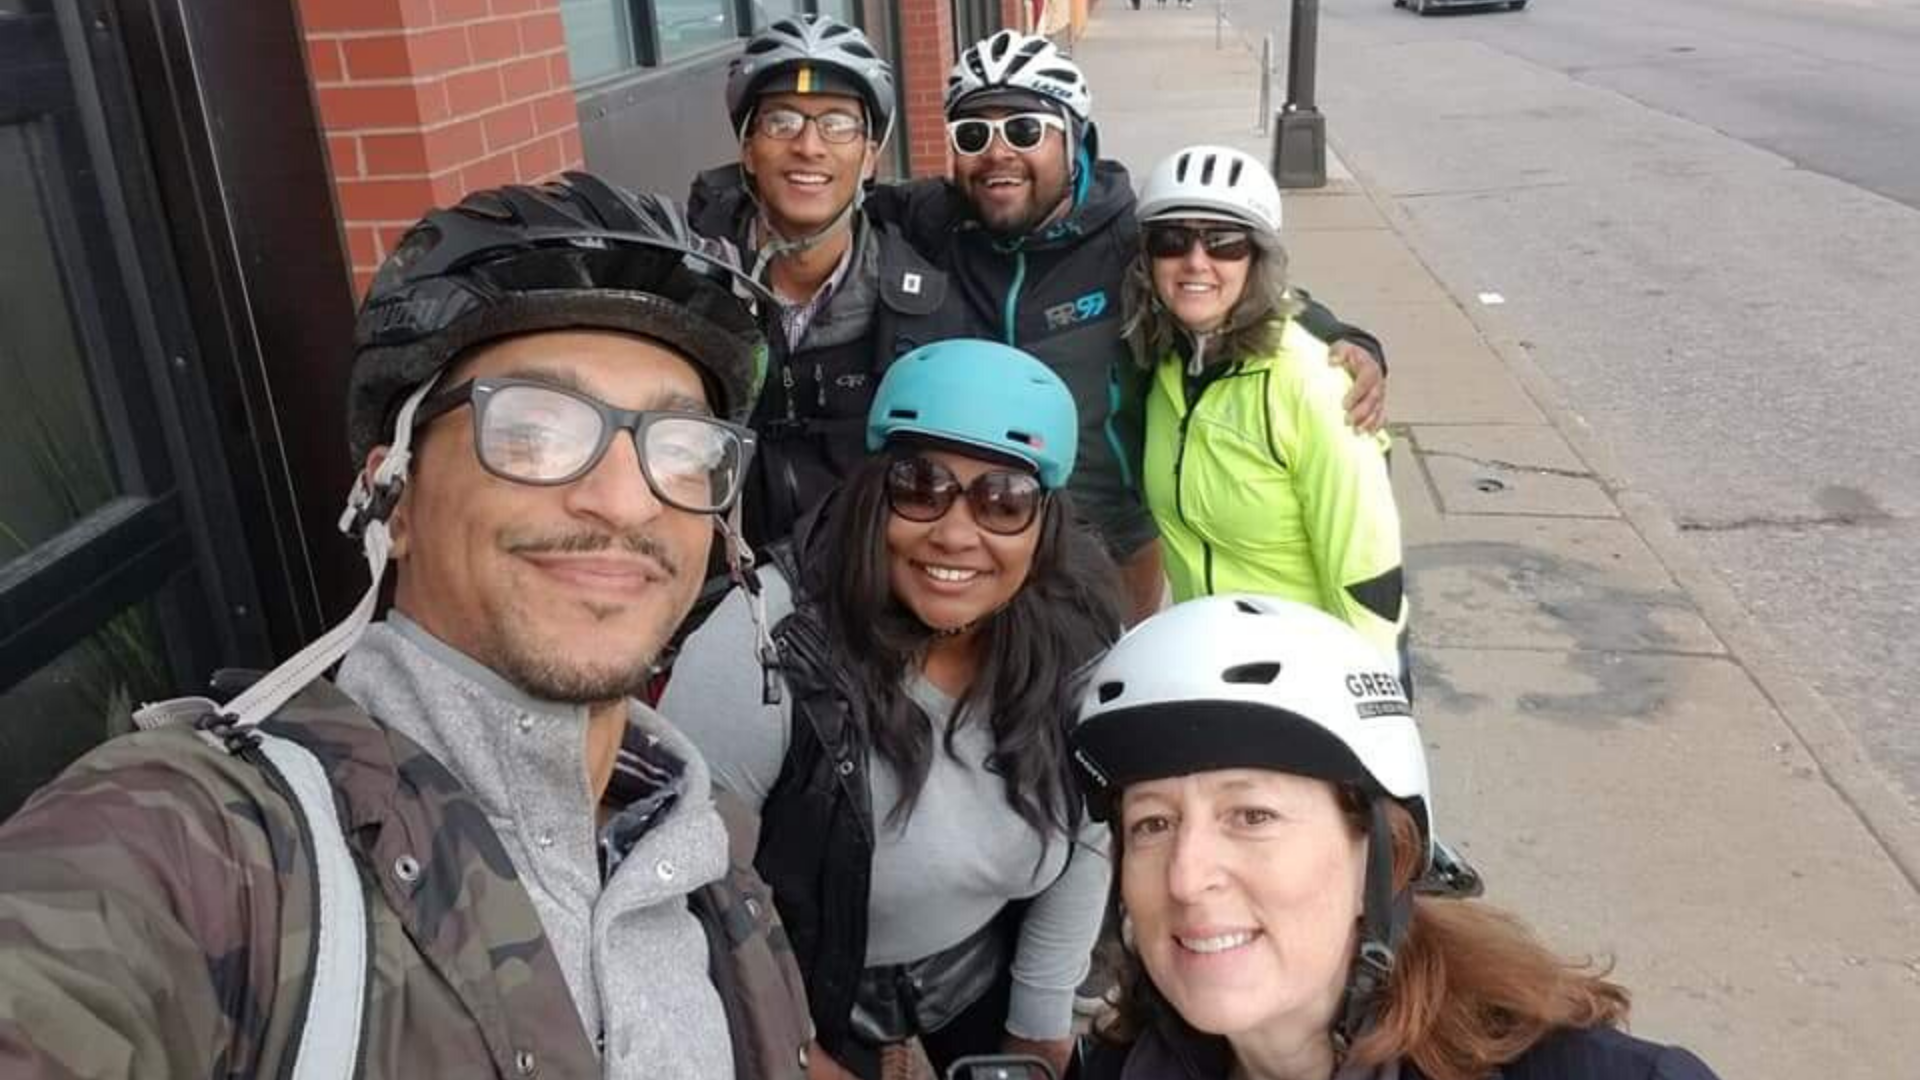 LaTrisha Vetaw, center, poses for a selfie with other folks in bike helmets